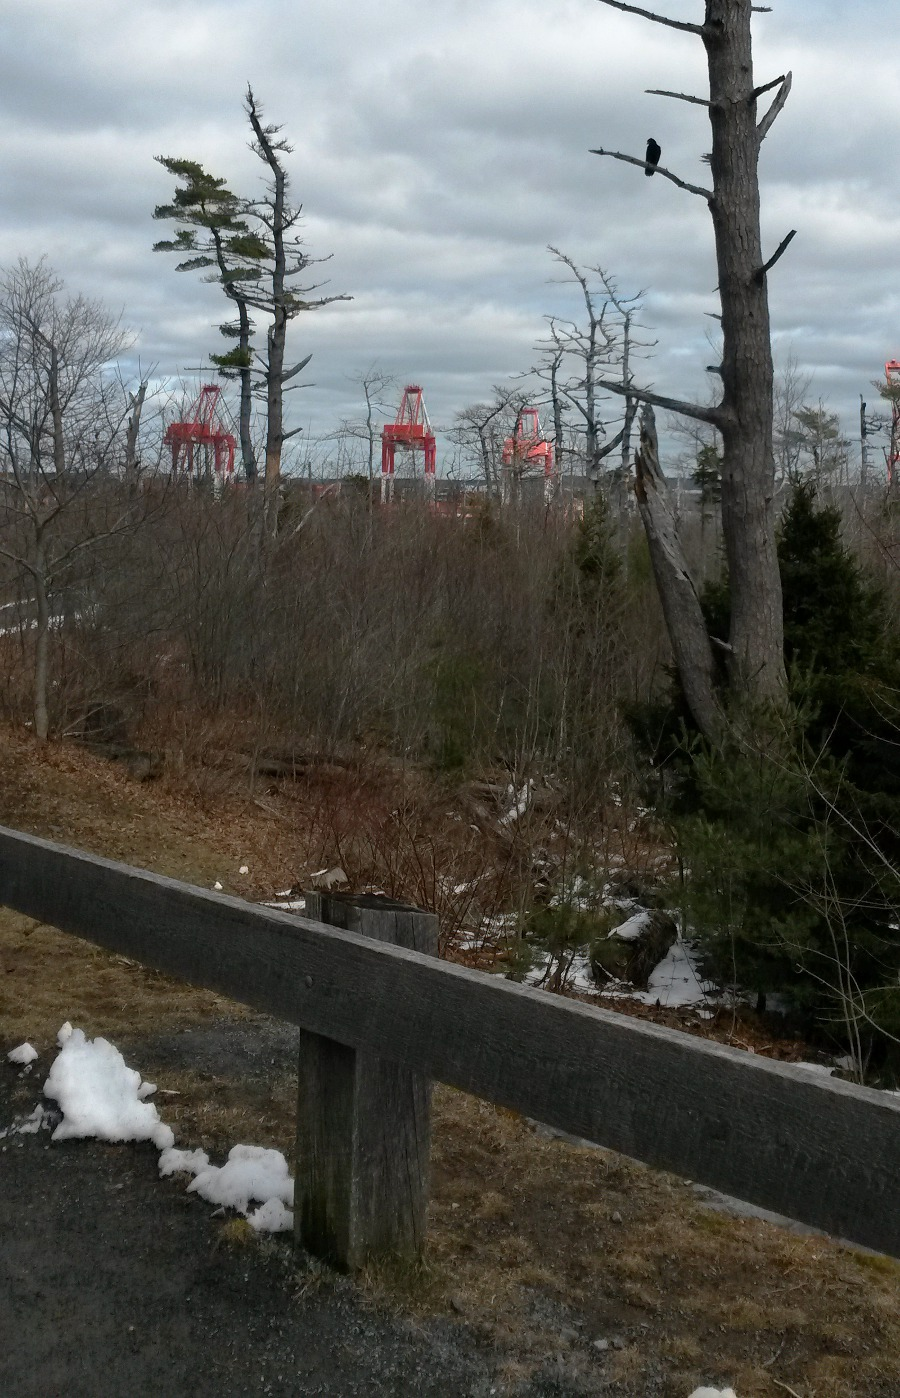 Container port in background, Point Pleasant Park